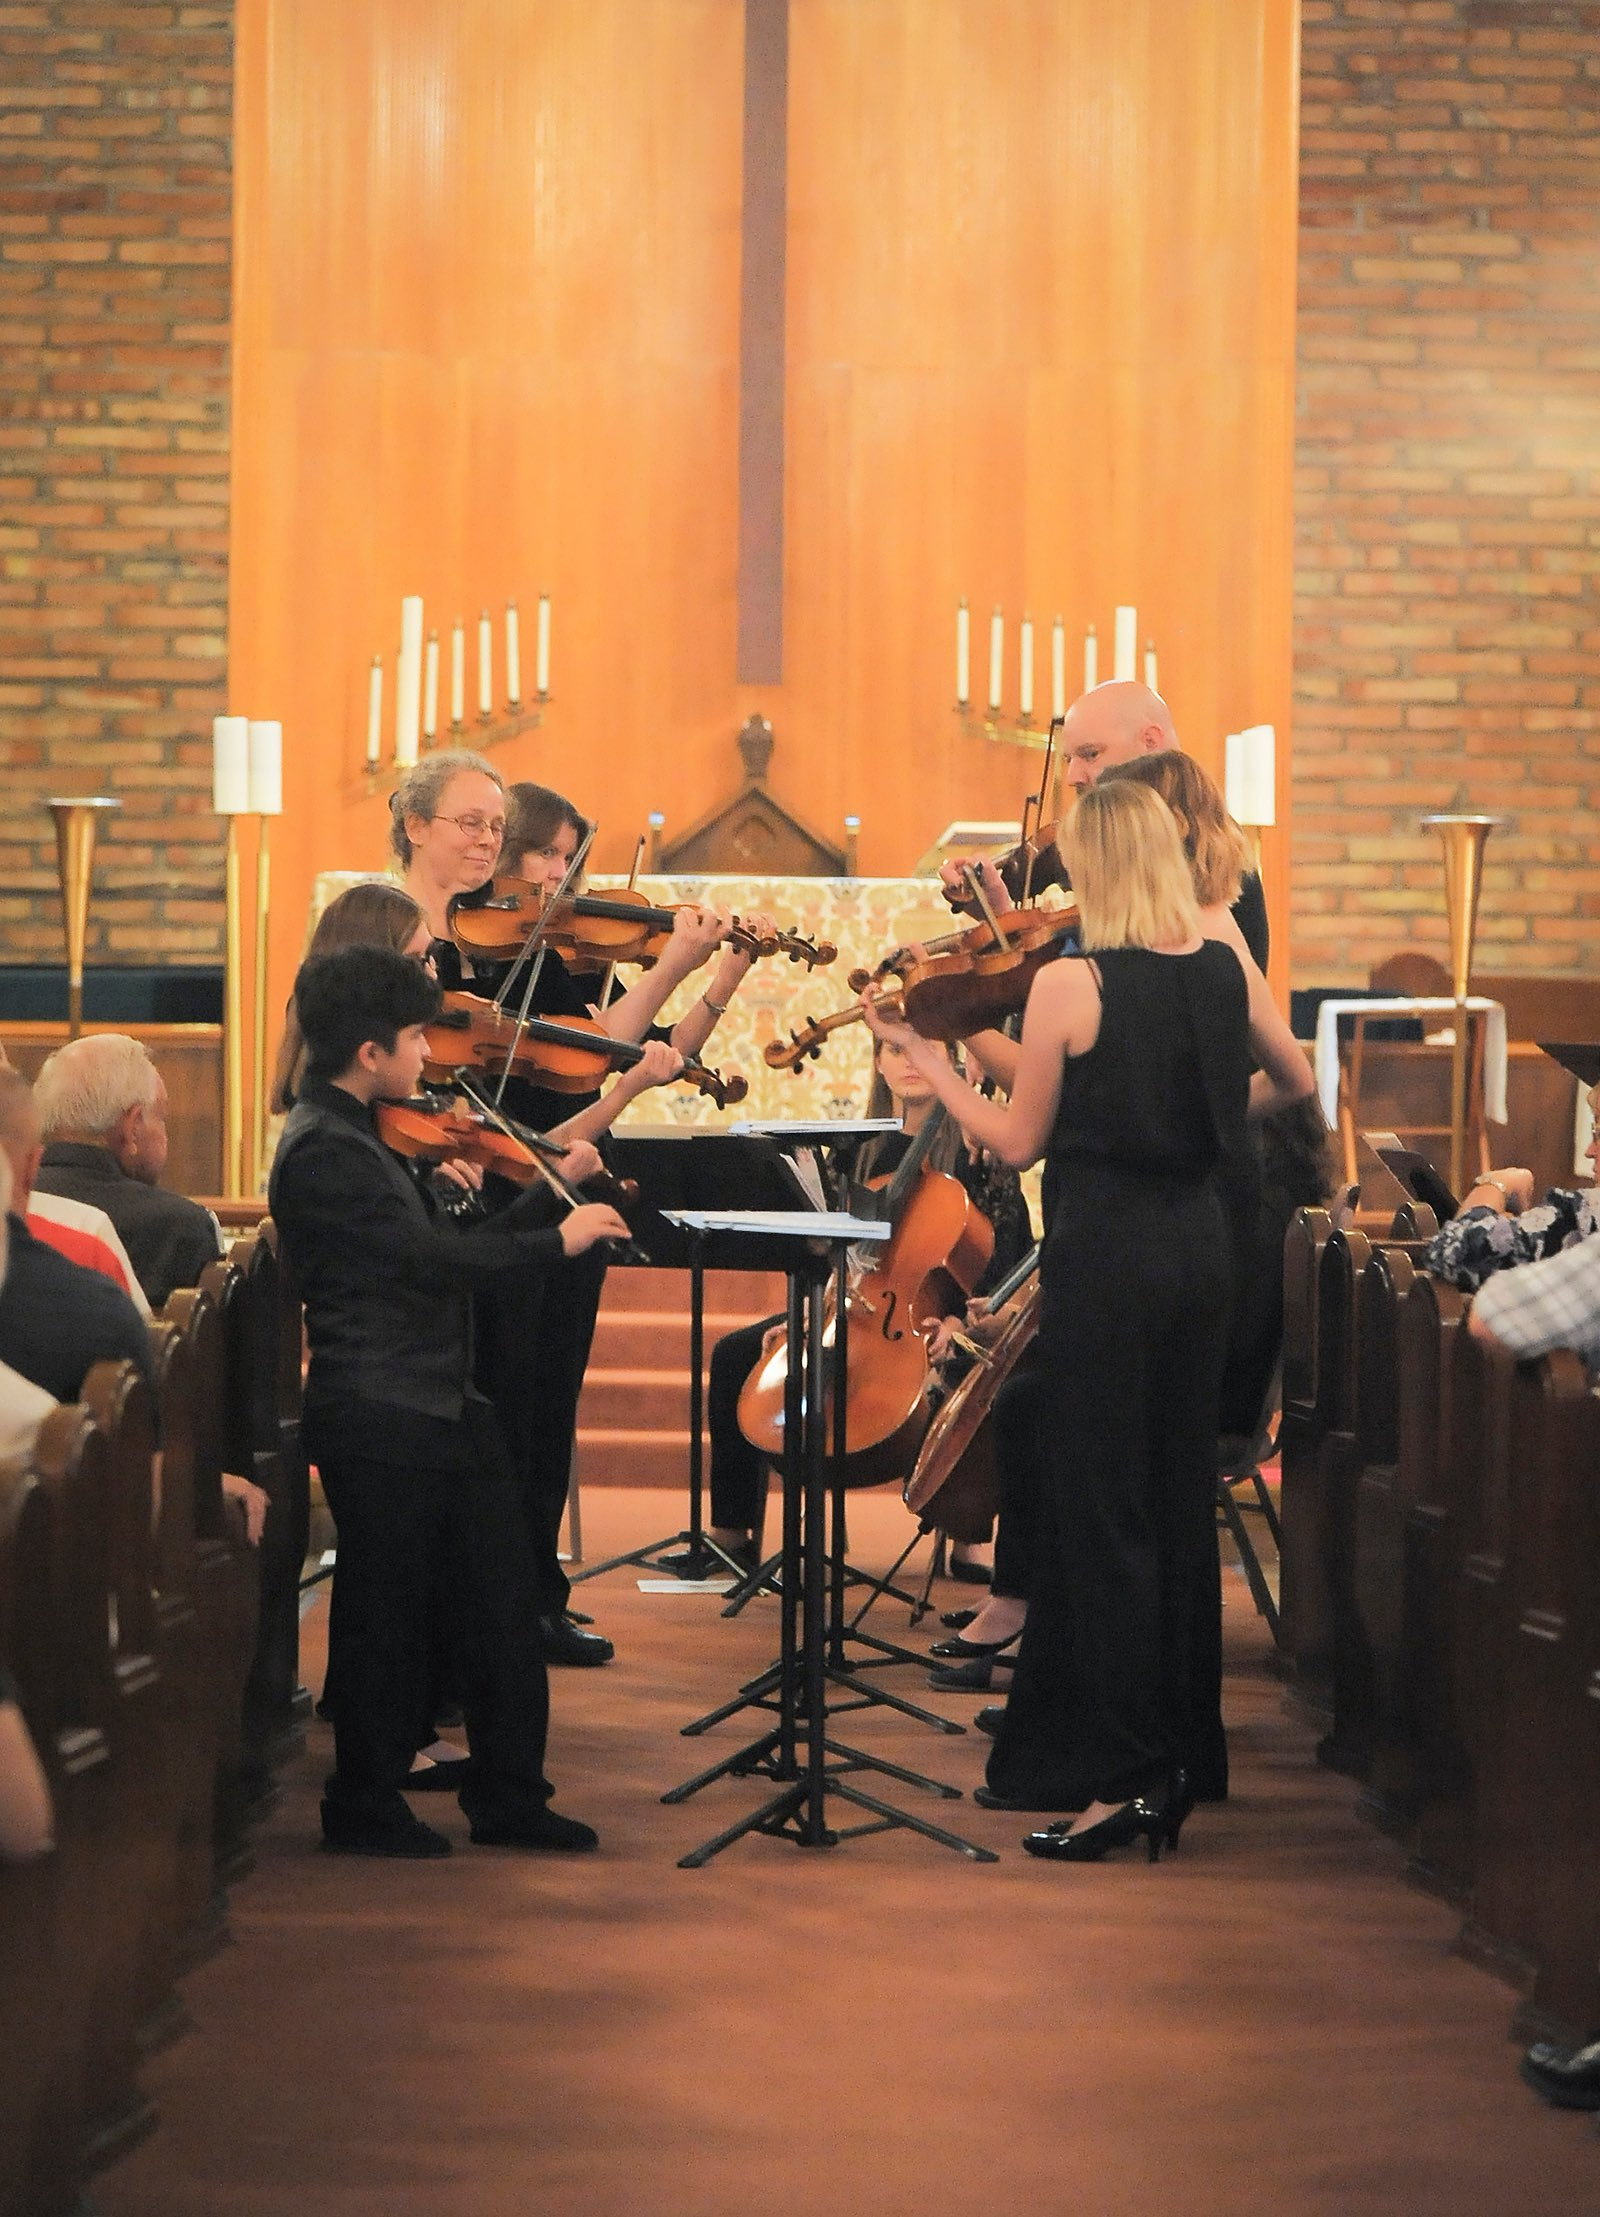 Performers stand playing string instruments in a church